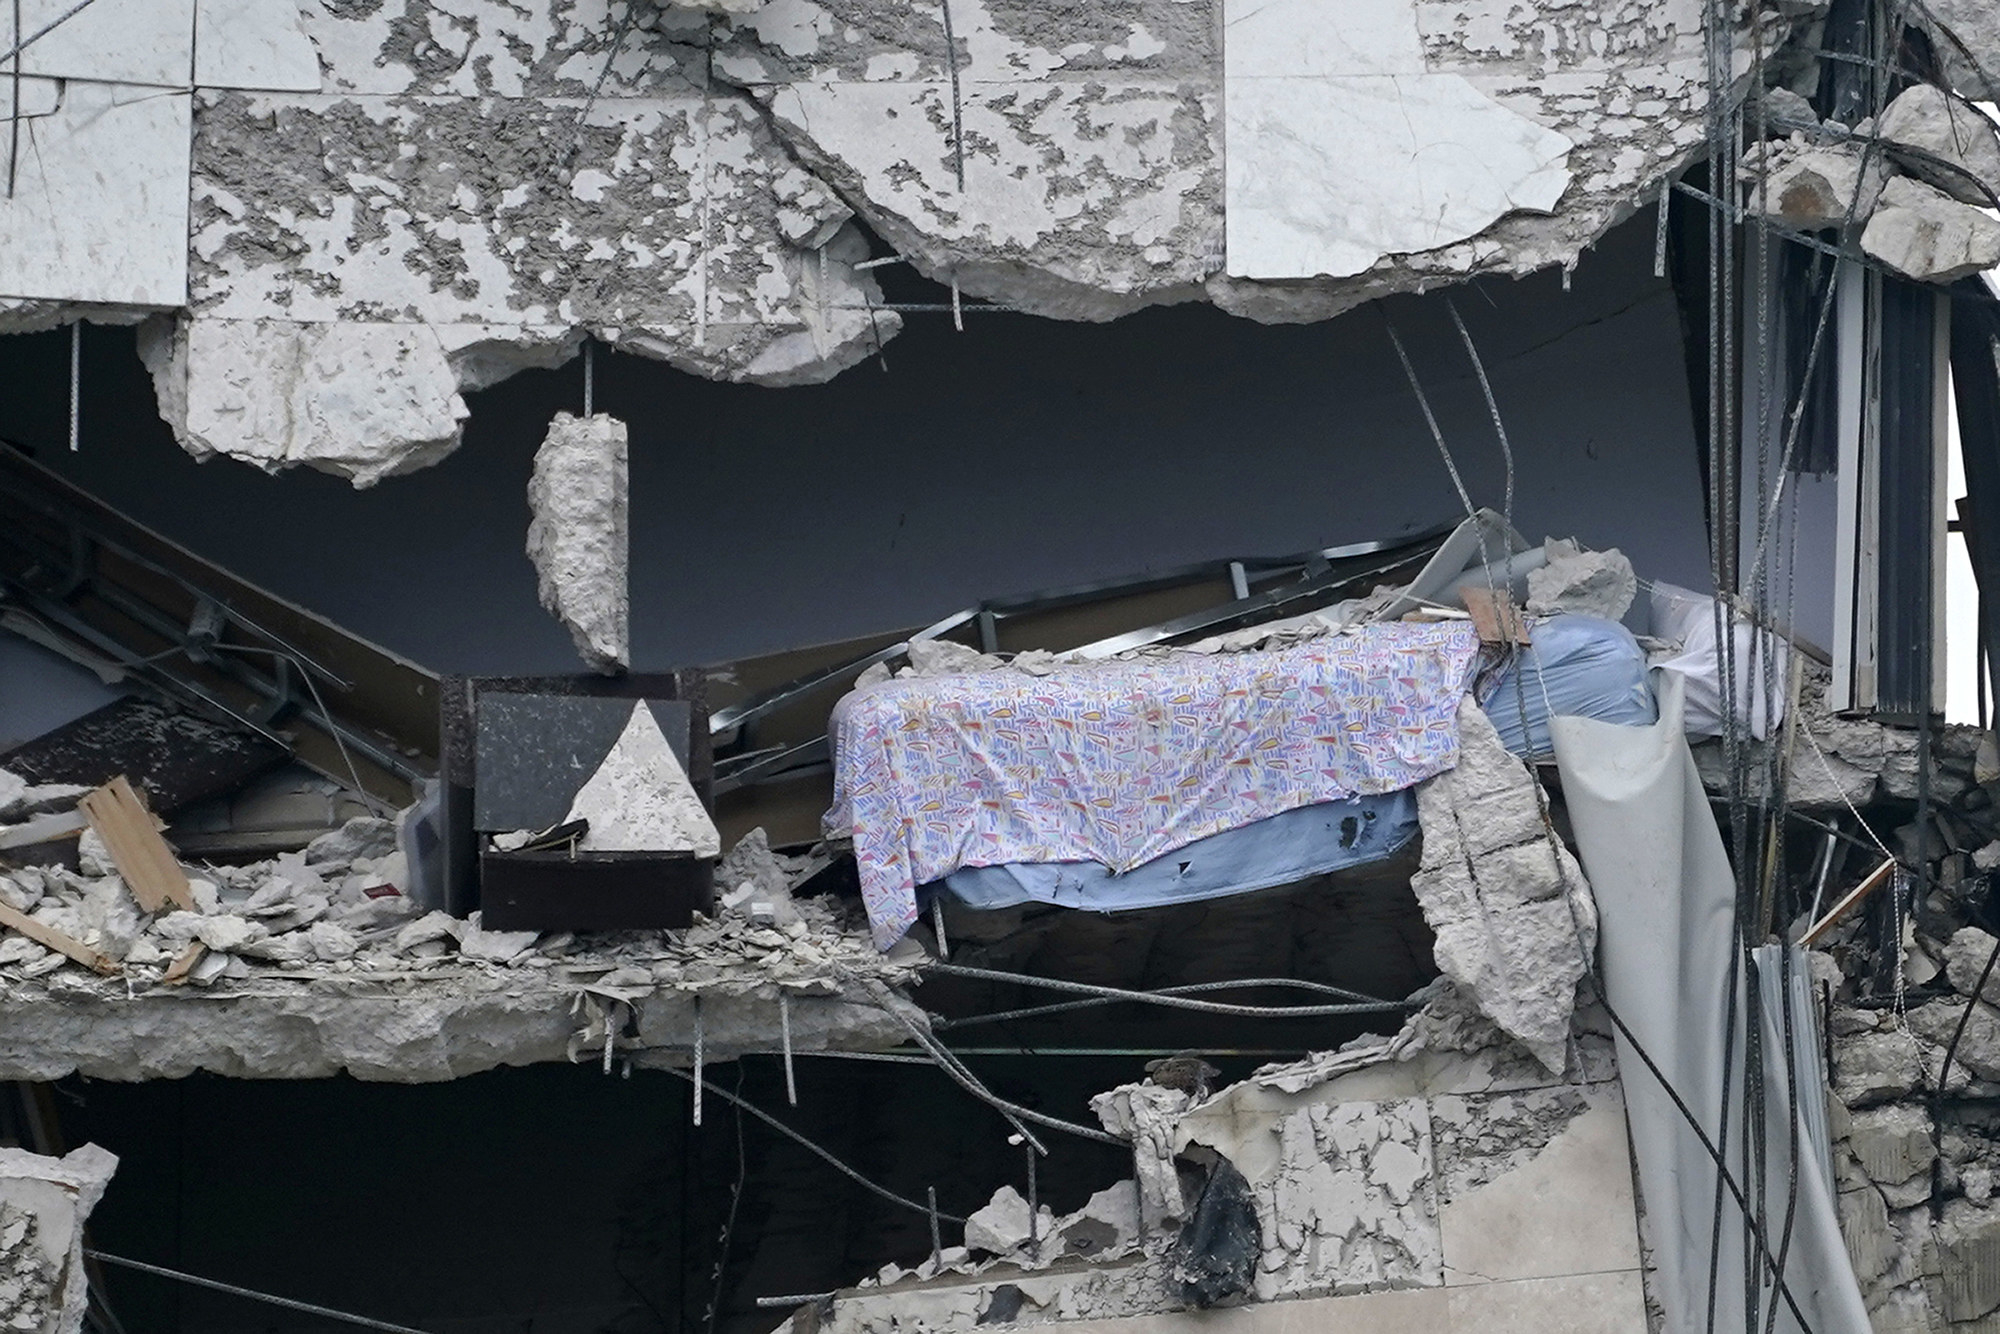 A bedroom with pink sheets is visible as the walls fell away at a partially collapsed building